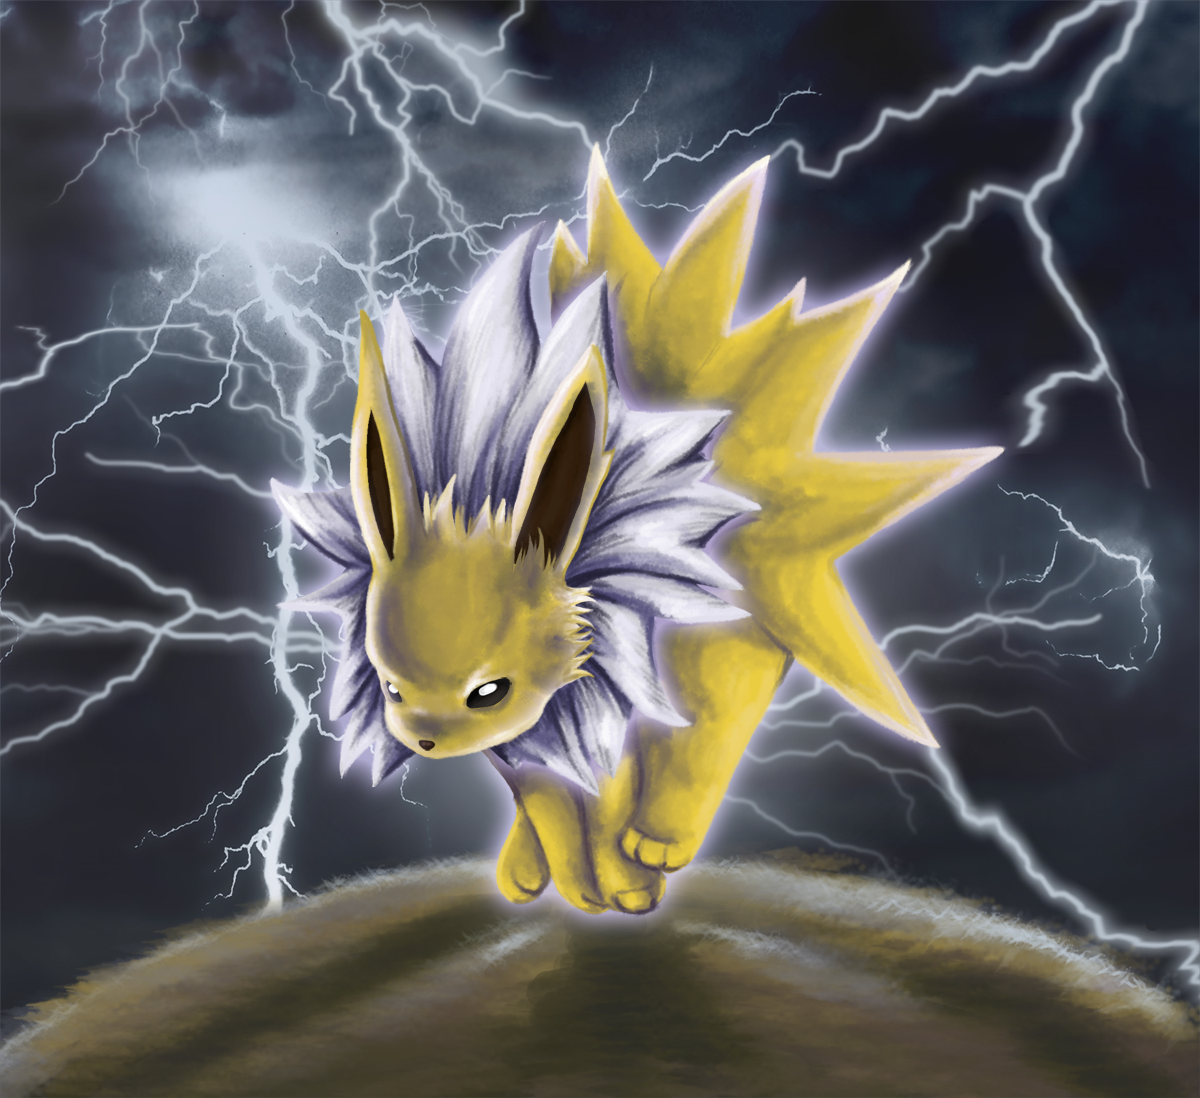 Jaques the jolteon by timatae on deviantart